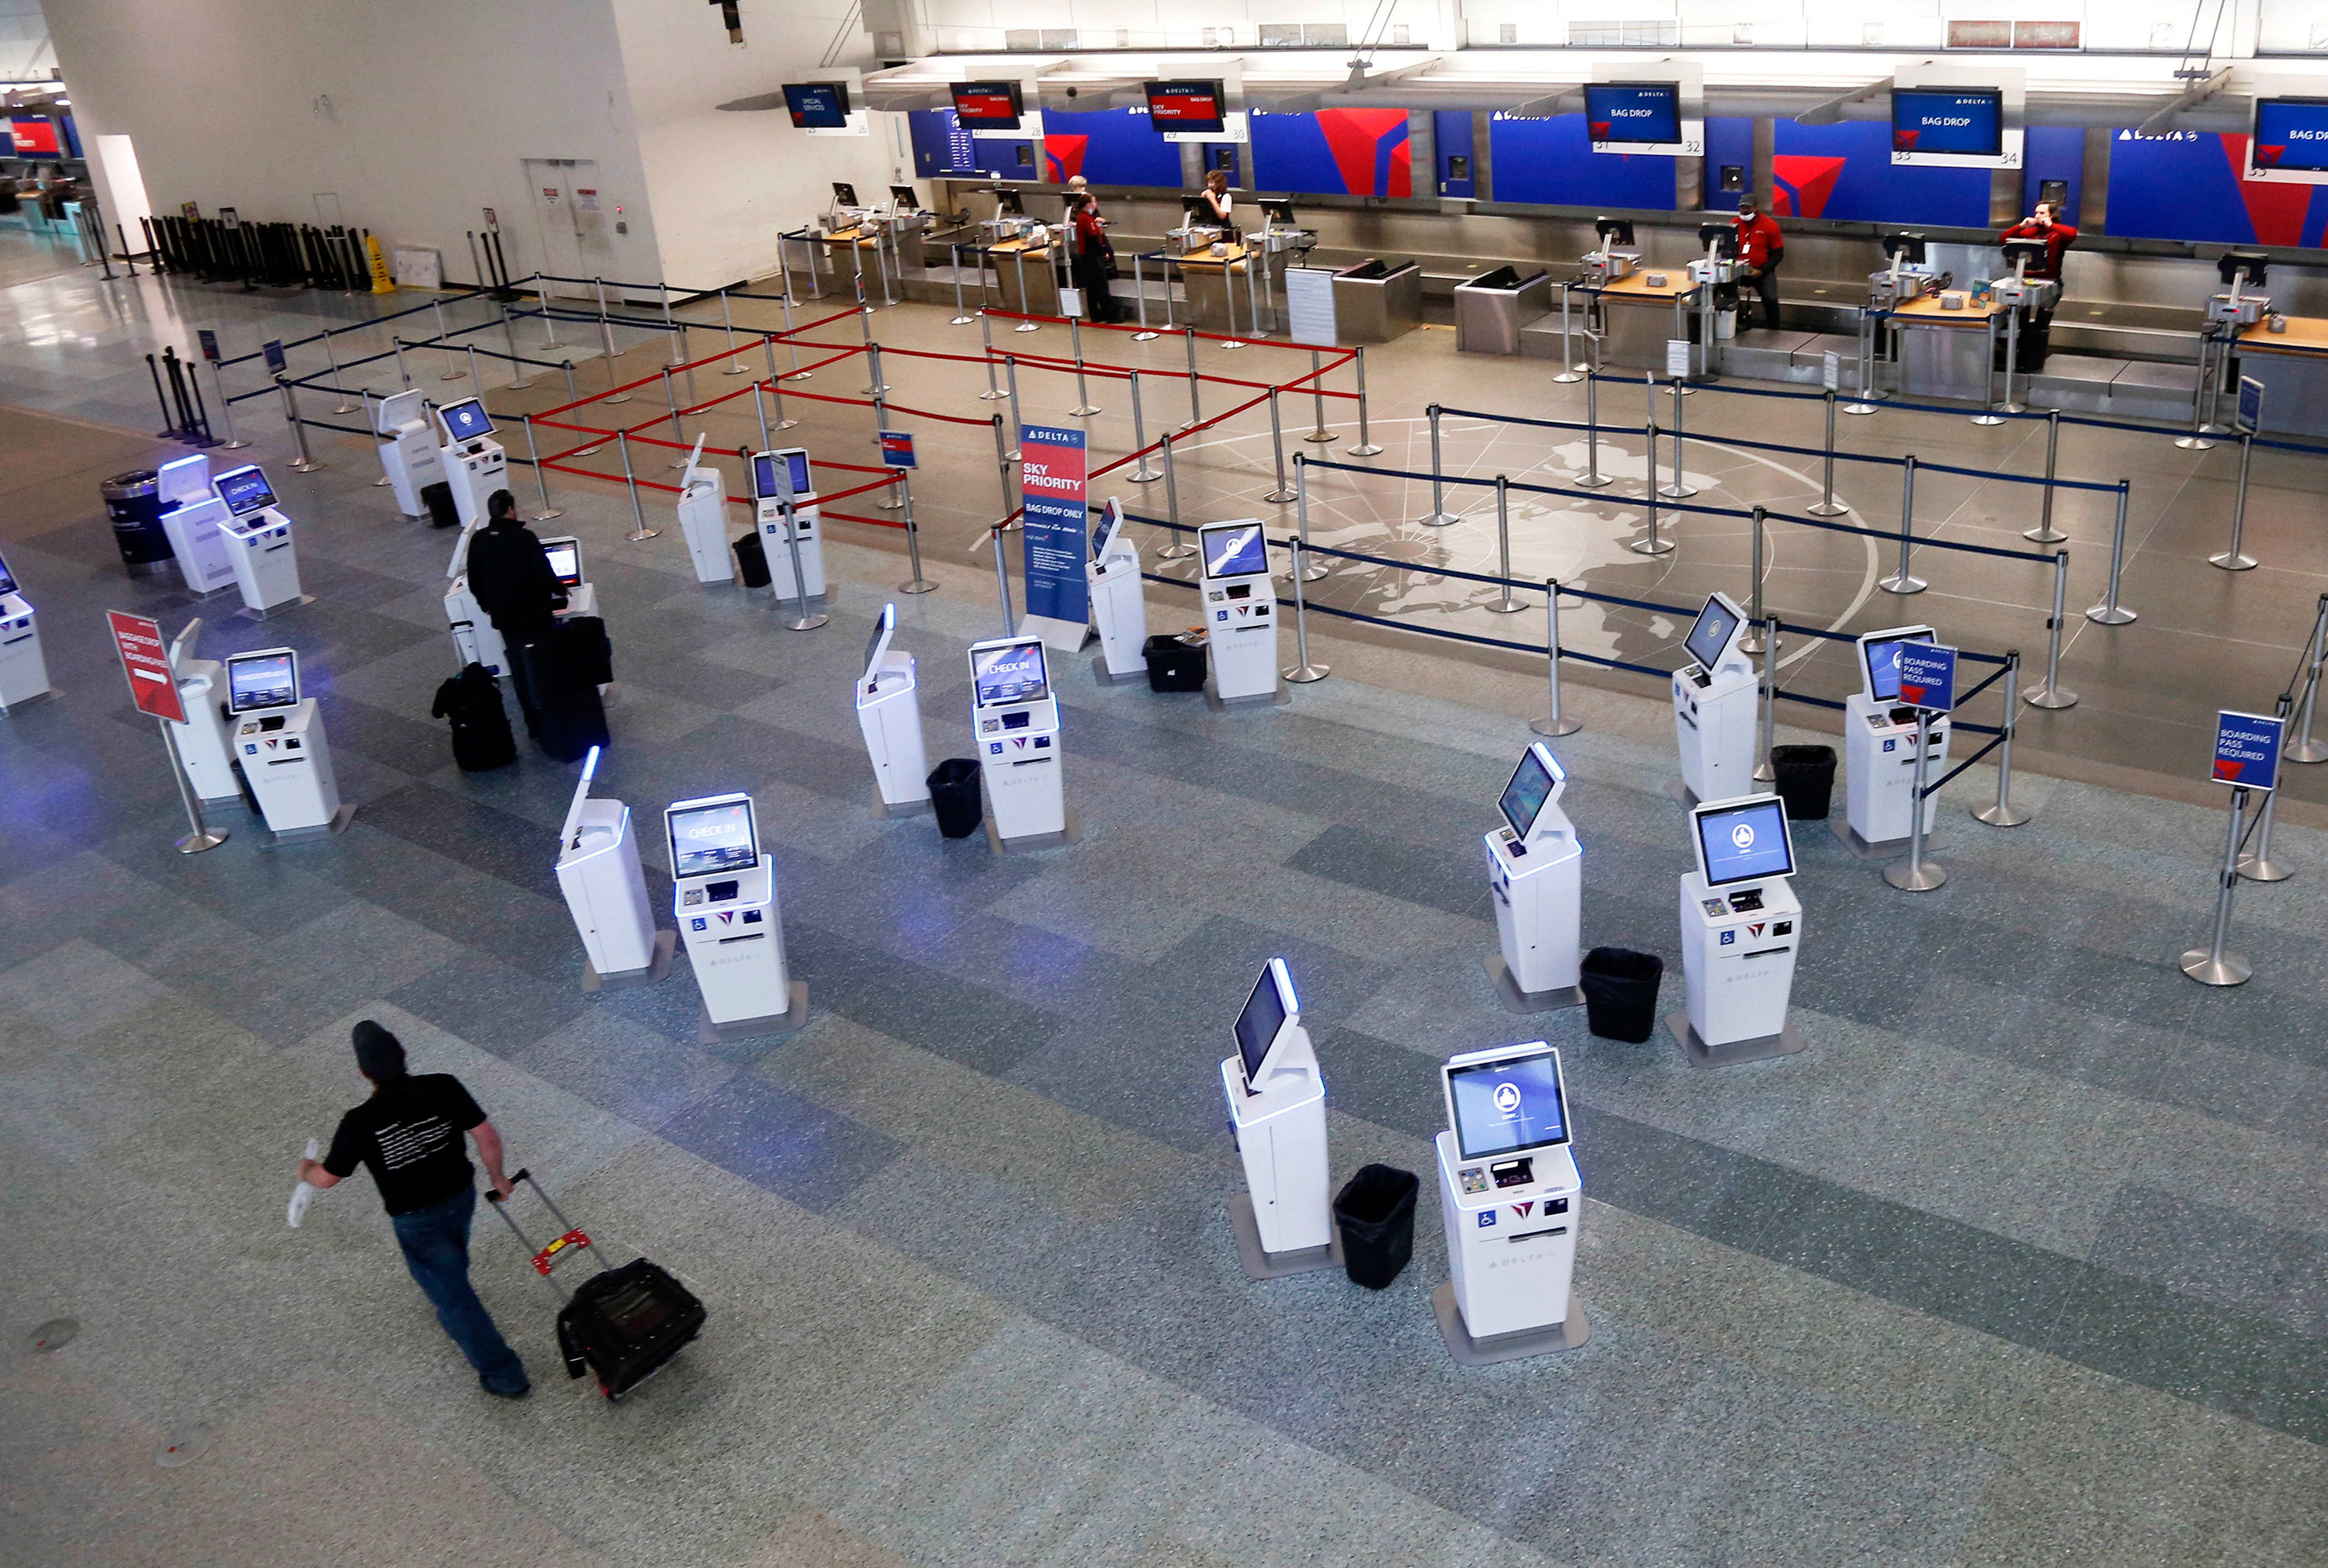 Nearly empty lines are seen at the Delta ticket counters at Minneapolis-St. Paul International Airport on May 4 in Minneapolis, Minnesota.